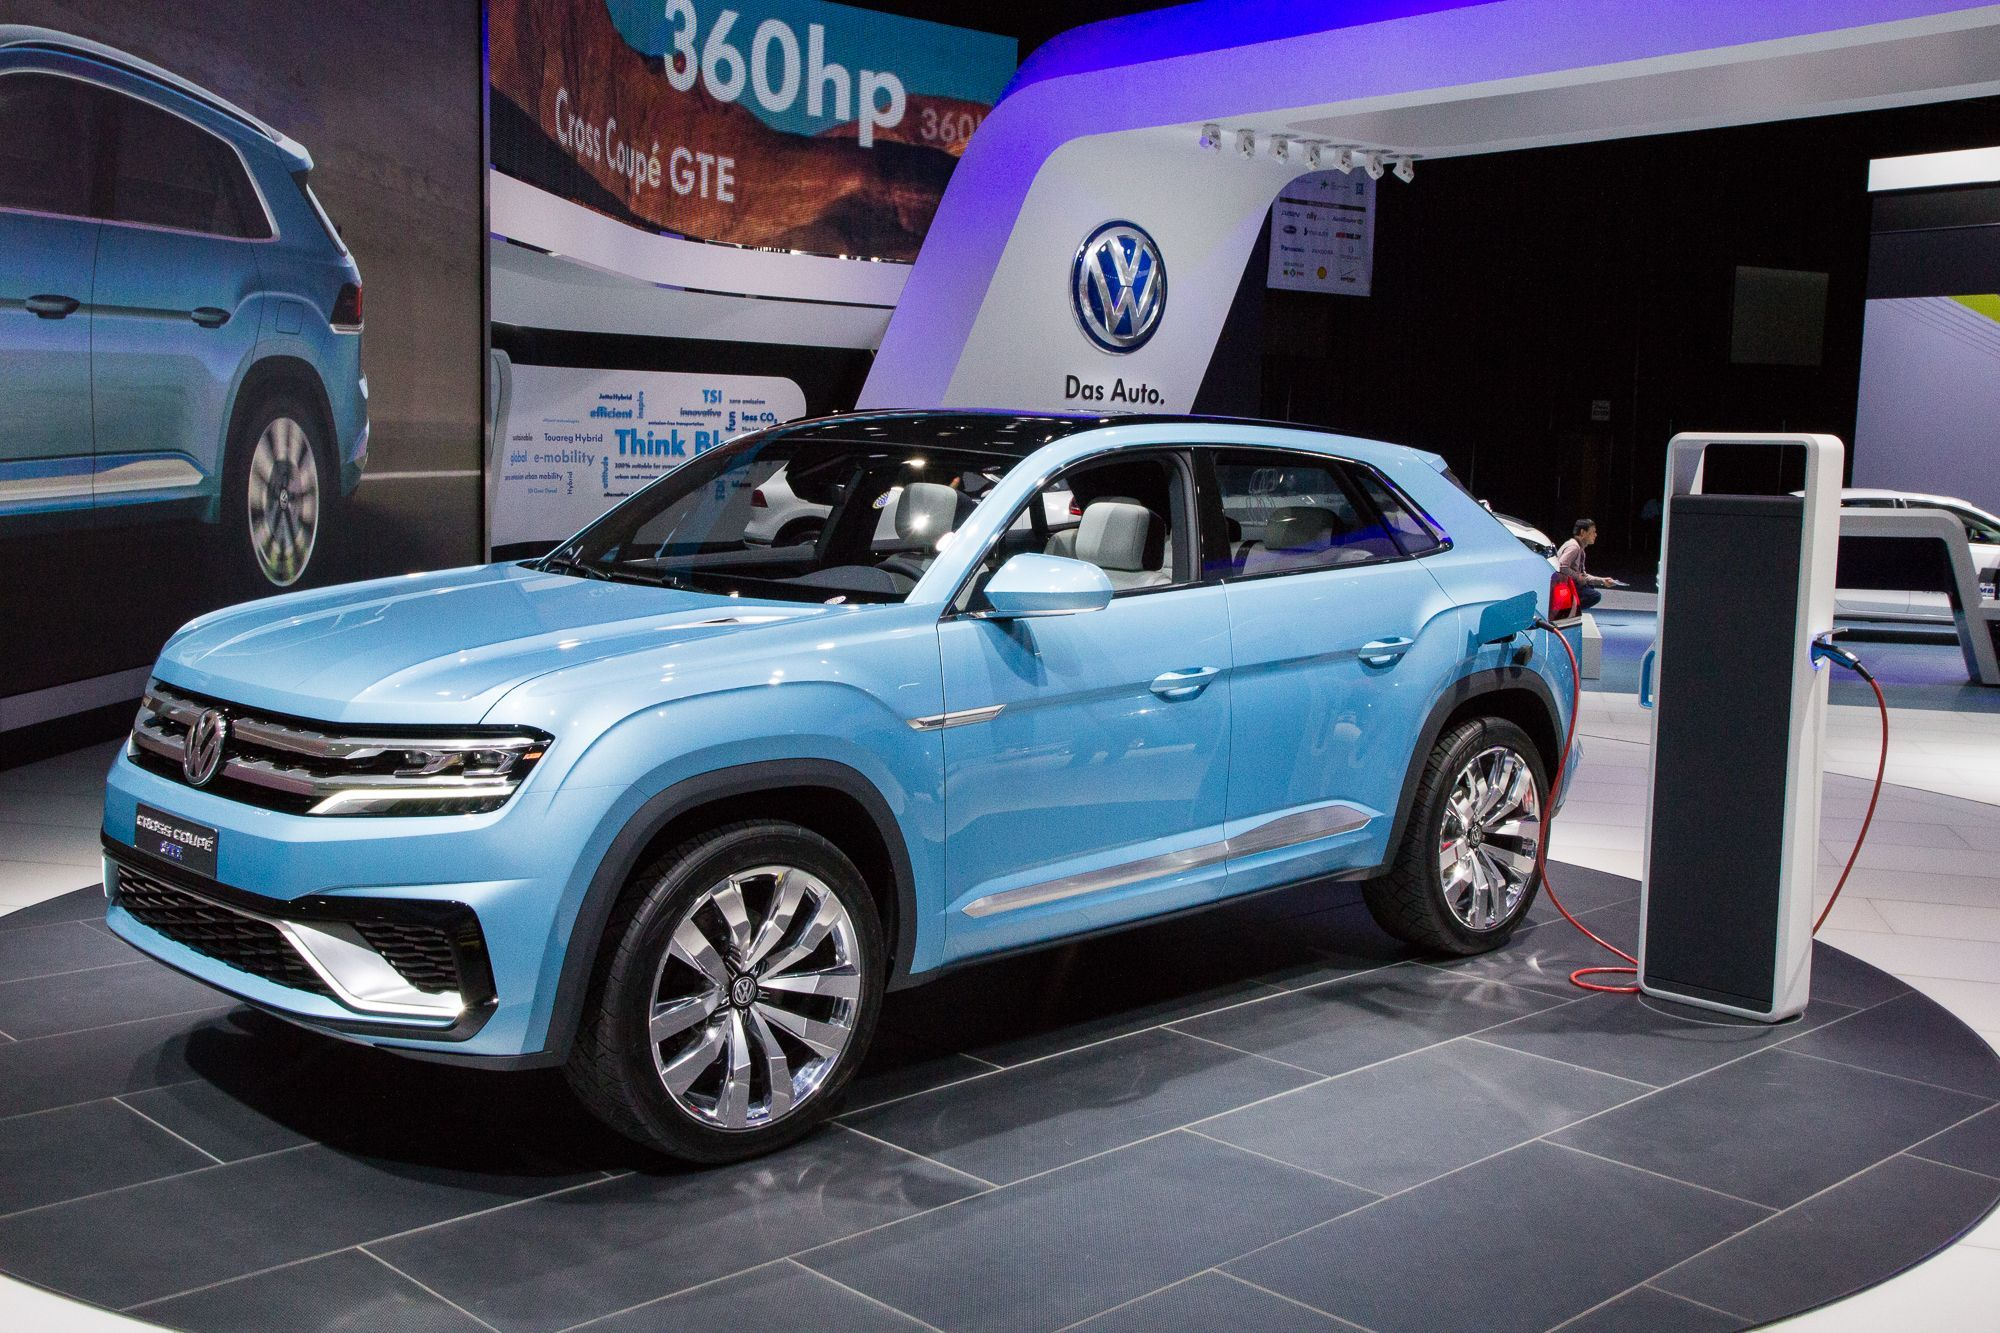 Vw Cross Coupe Gte Release Date >> The 2019 Volkswagen Cross Gte Review And Release Date Cars Picture